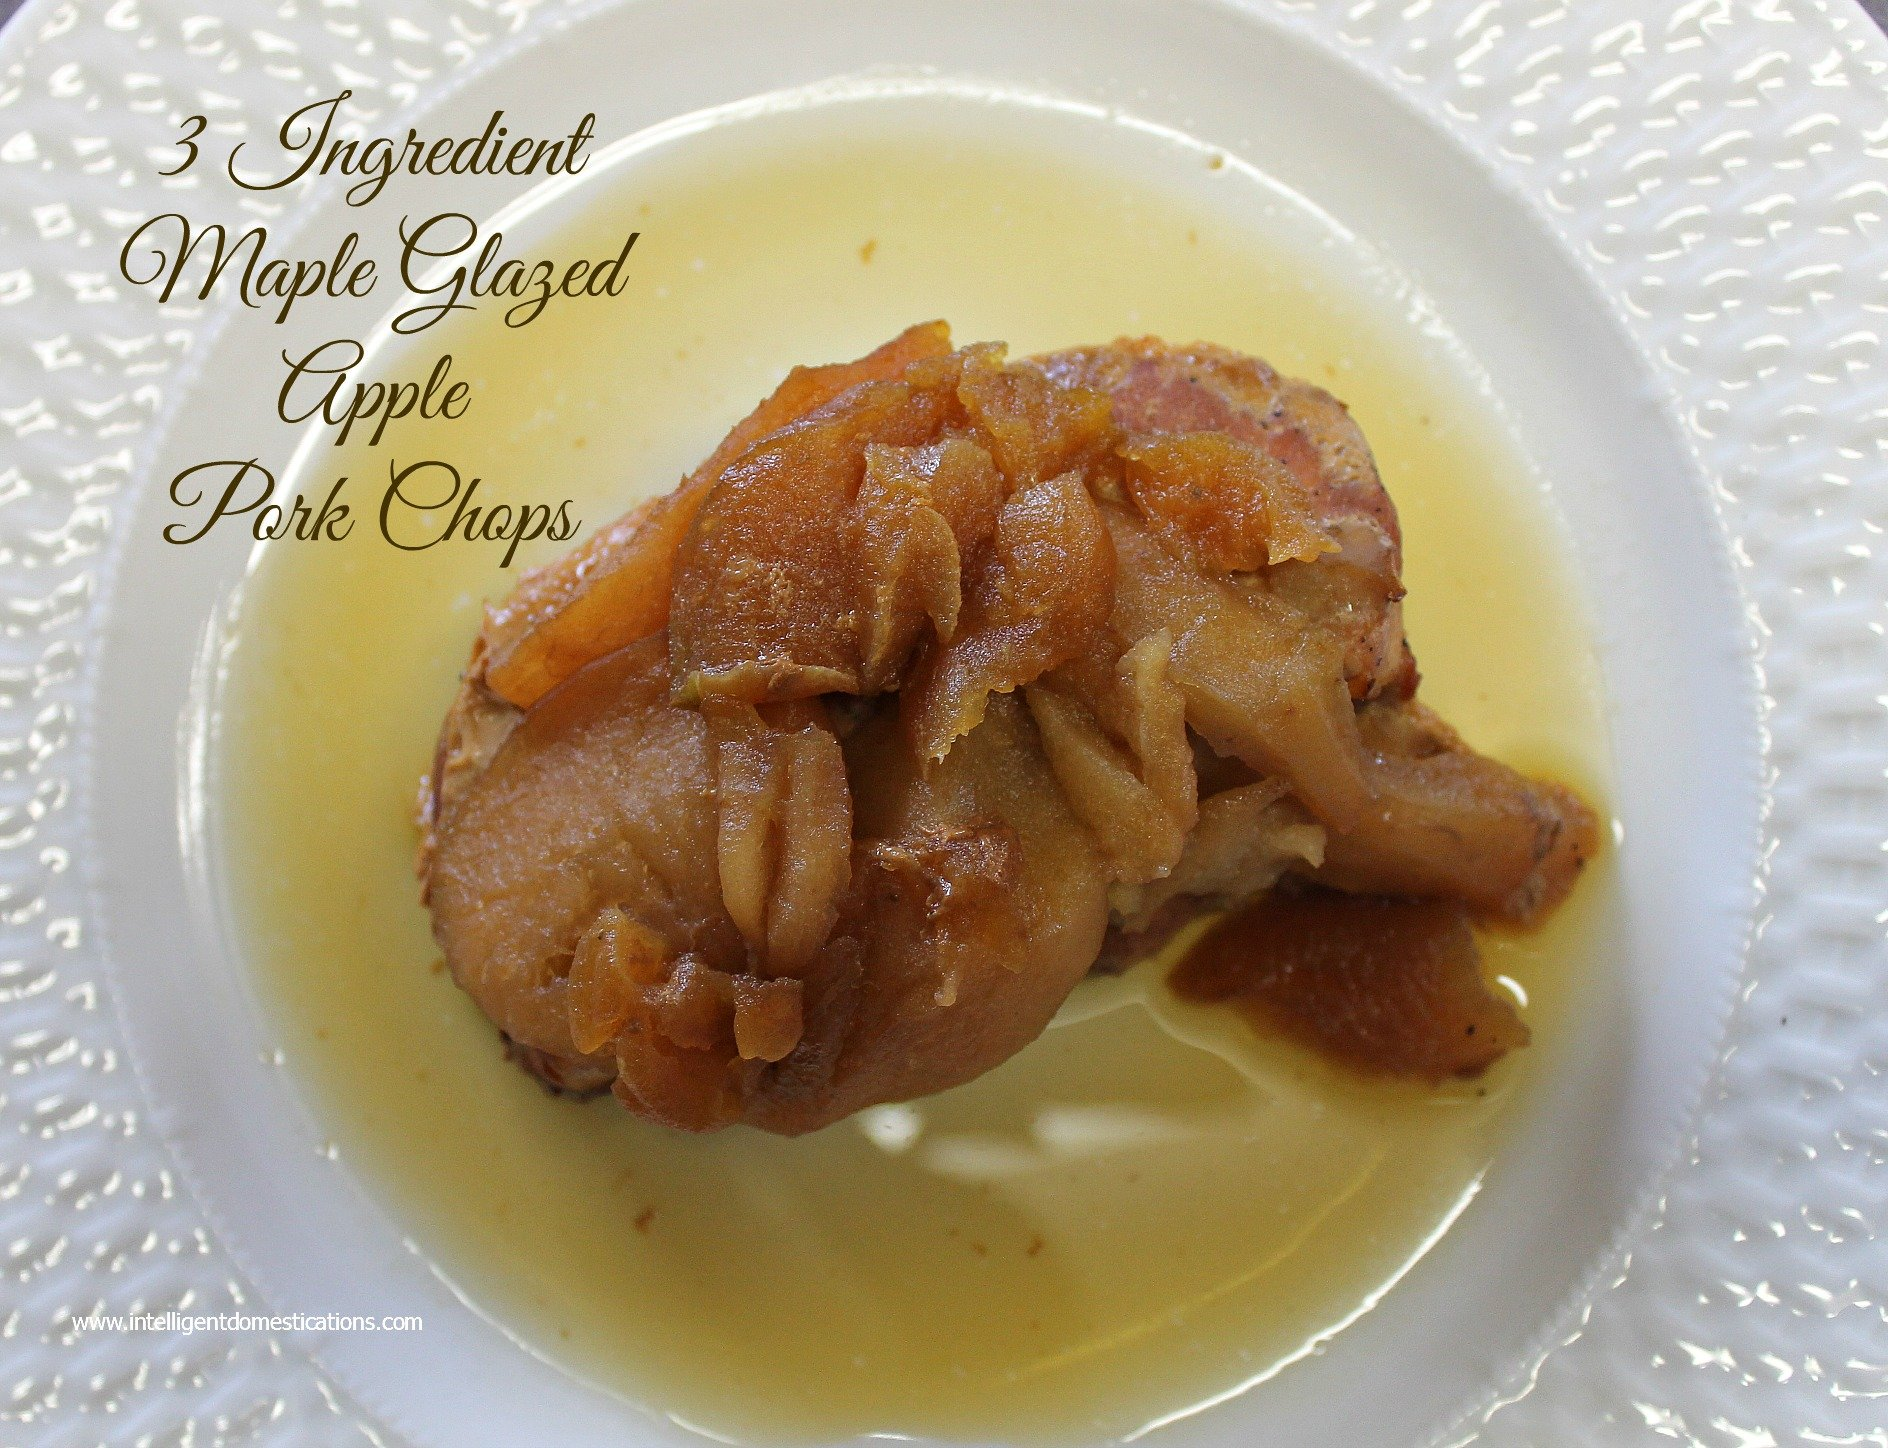 3 Ingredient Crockpot Maple Glazed Apple Pork Chops